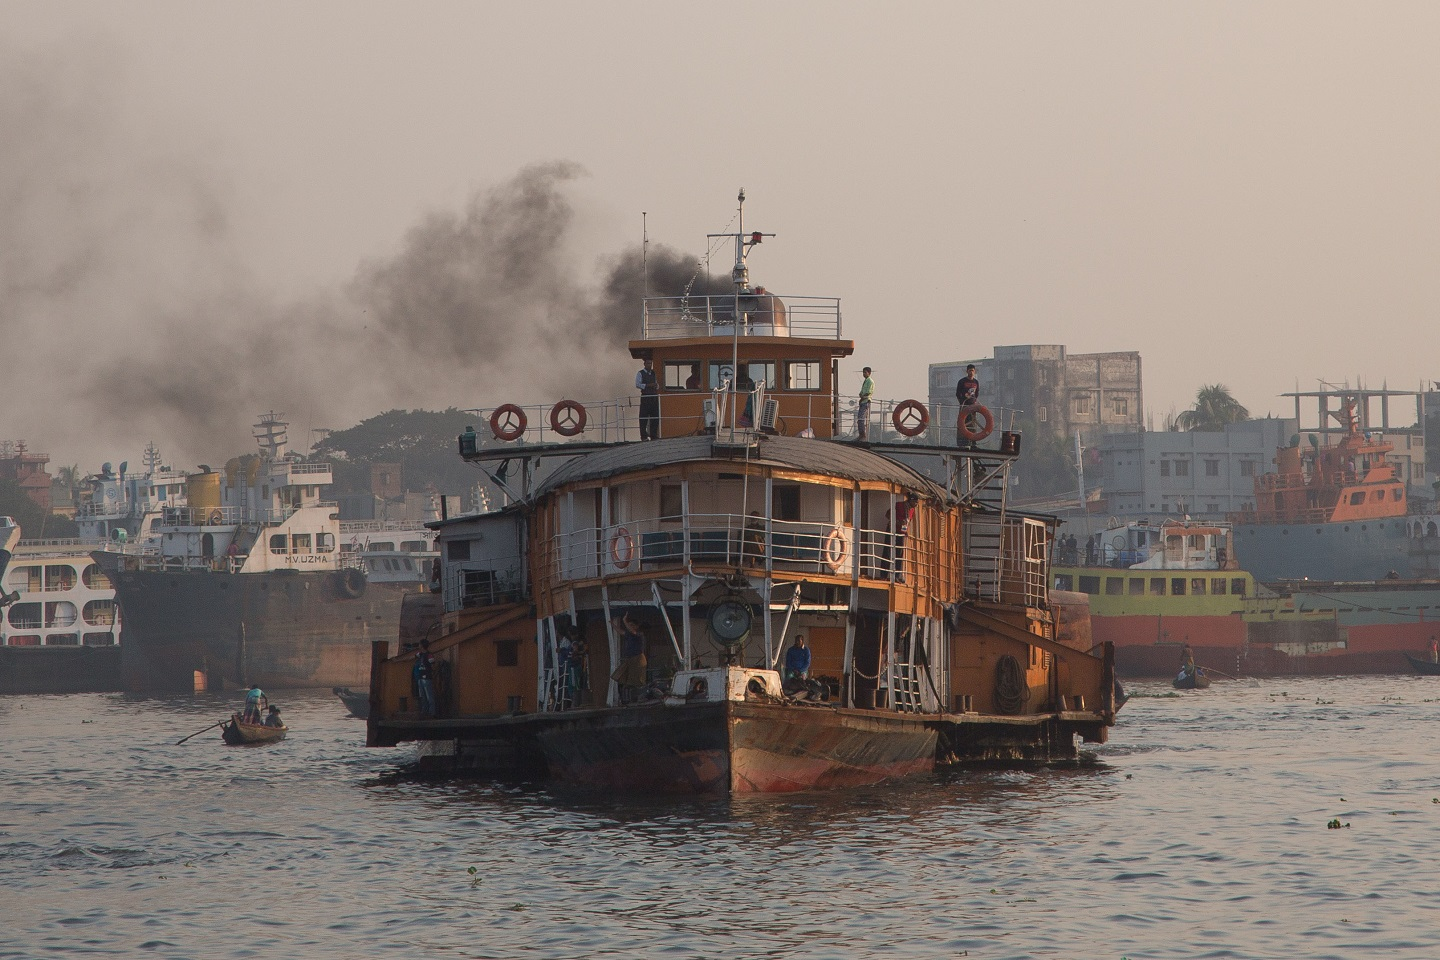 5 Most Iconic Launches And Ships Of Bangladesh - Bproperty